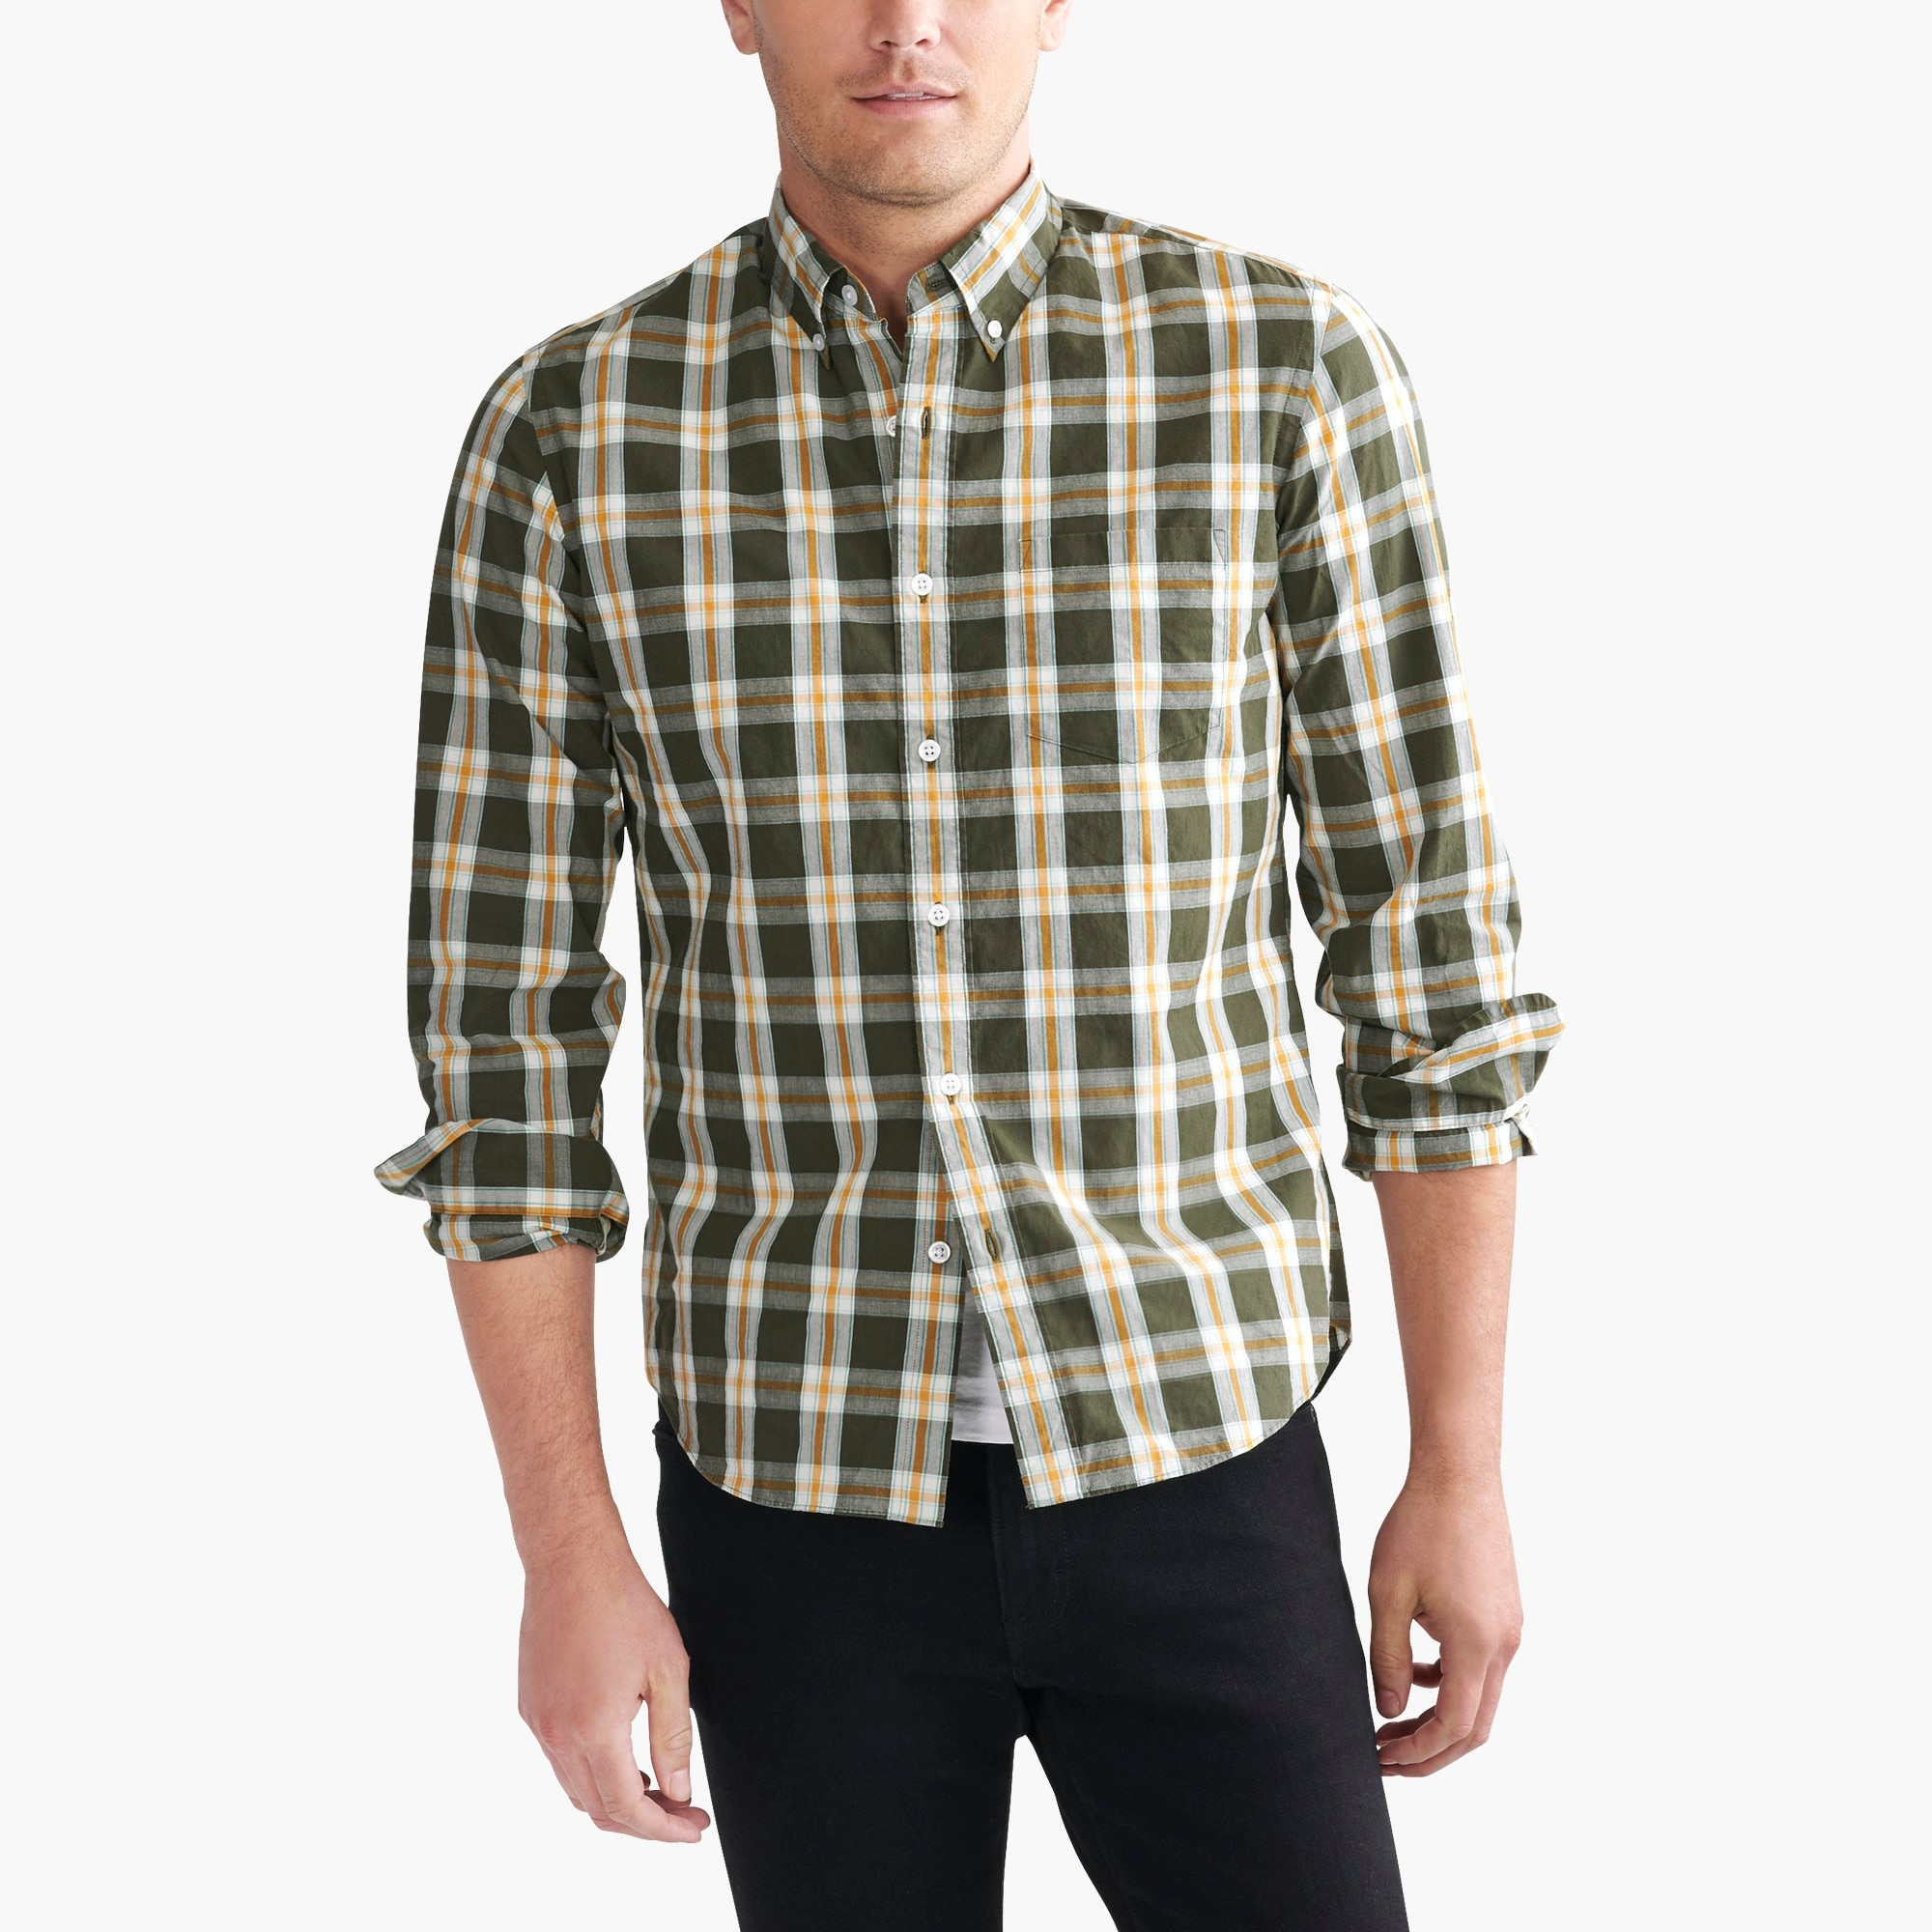 Image 1 for Slim flex washed shirt in plaid